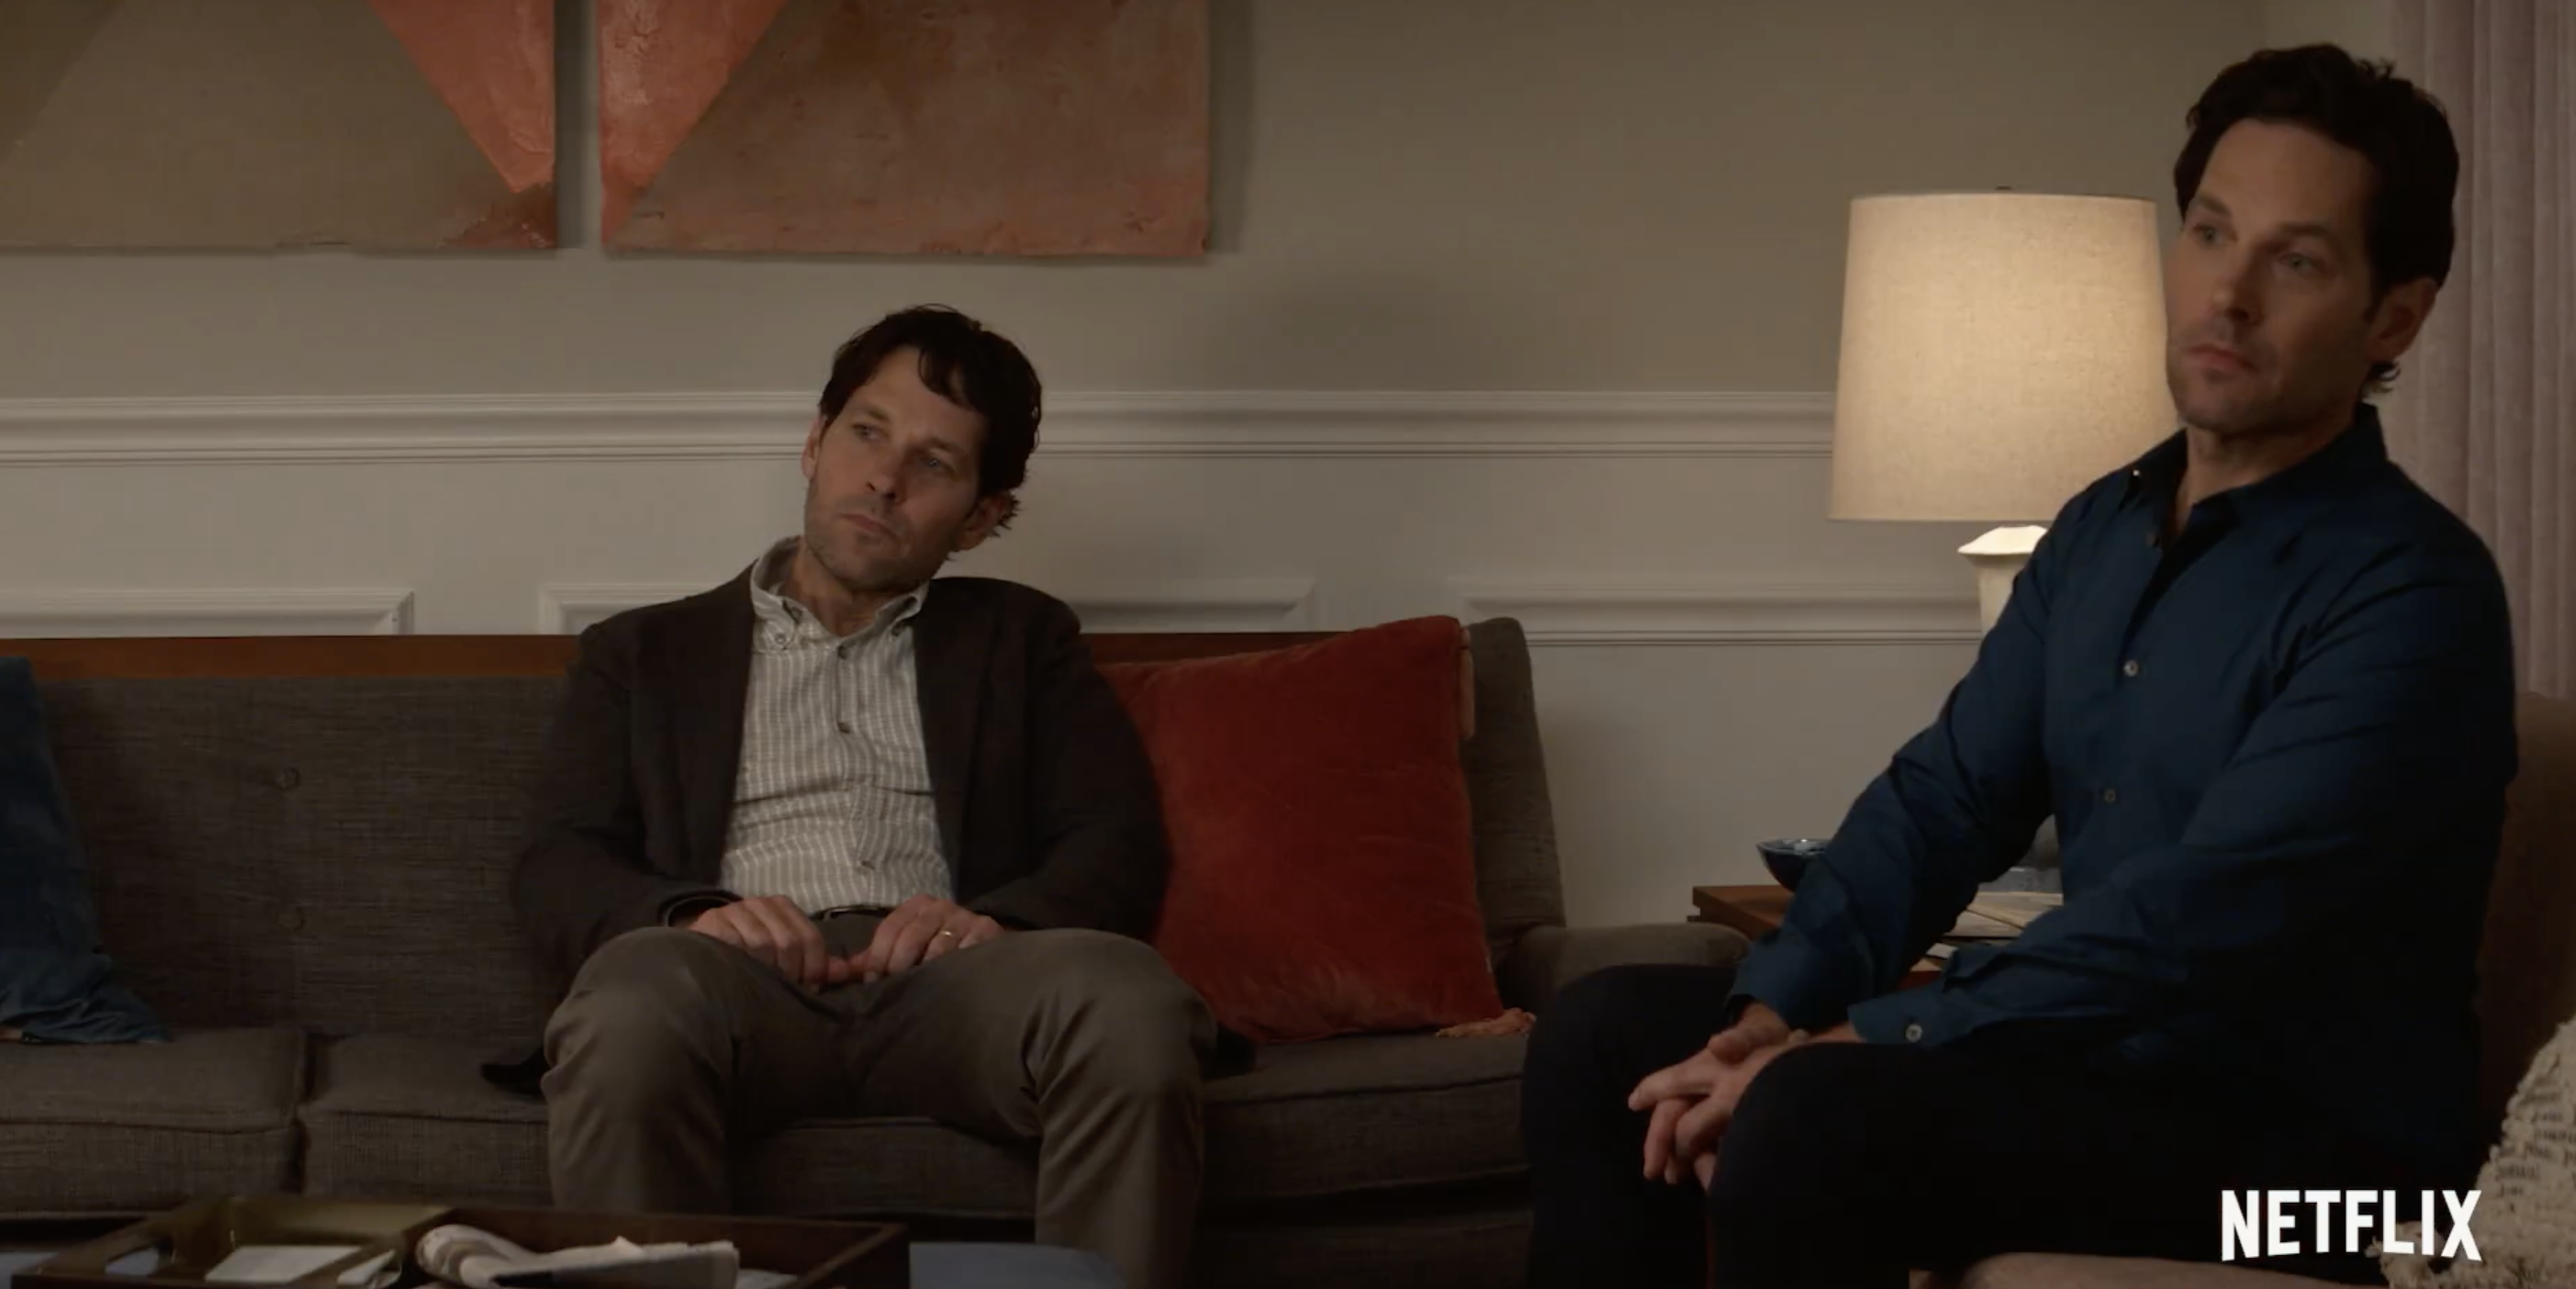 two paul rudds, chilling on a couch, five feet apart 'cuz they're the same guy